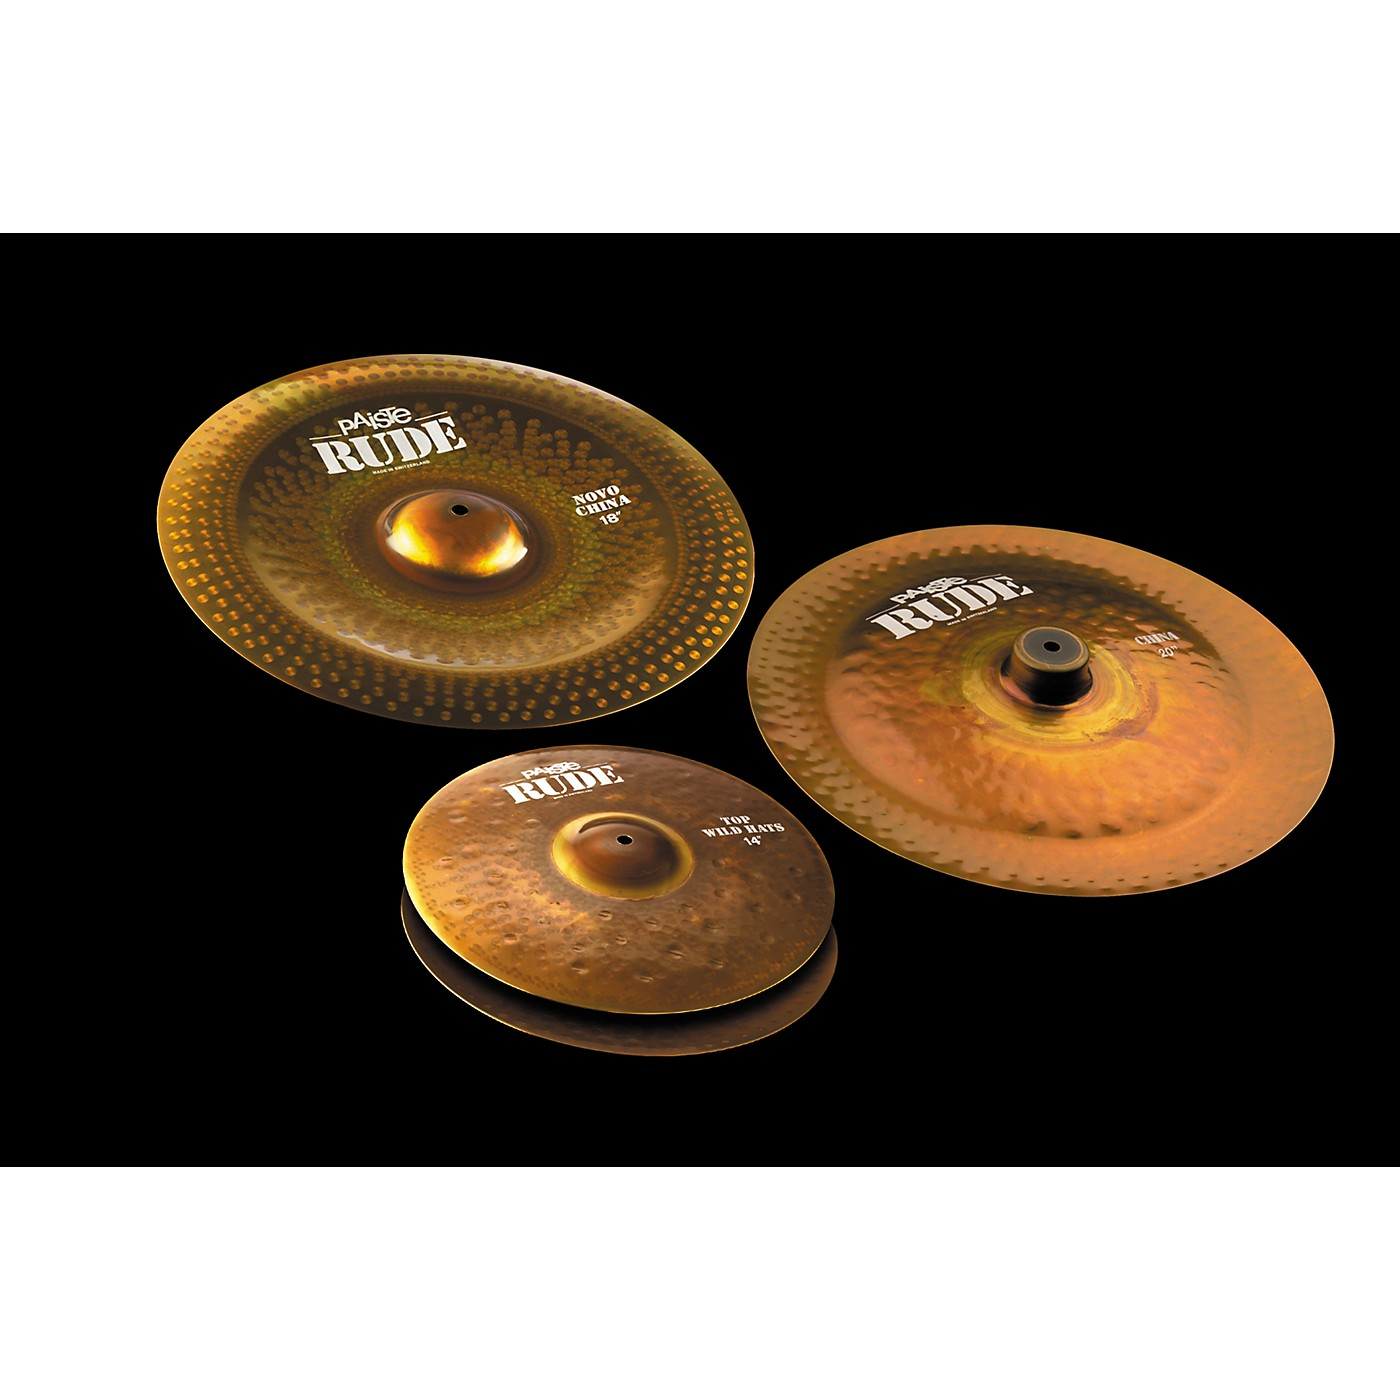 Paiste Rude Novo China Cymbal thumbnail